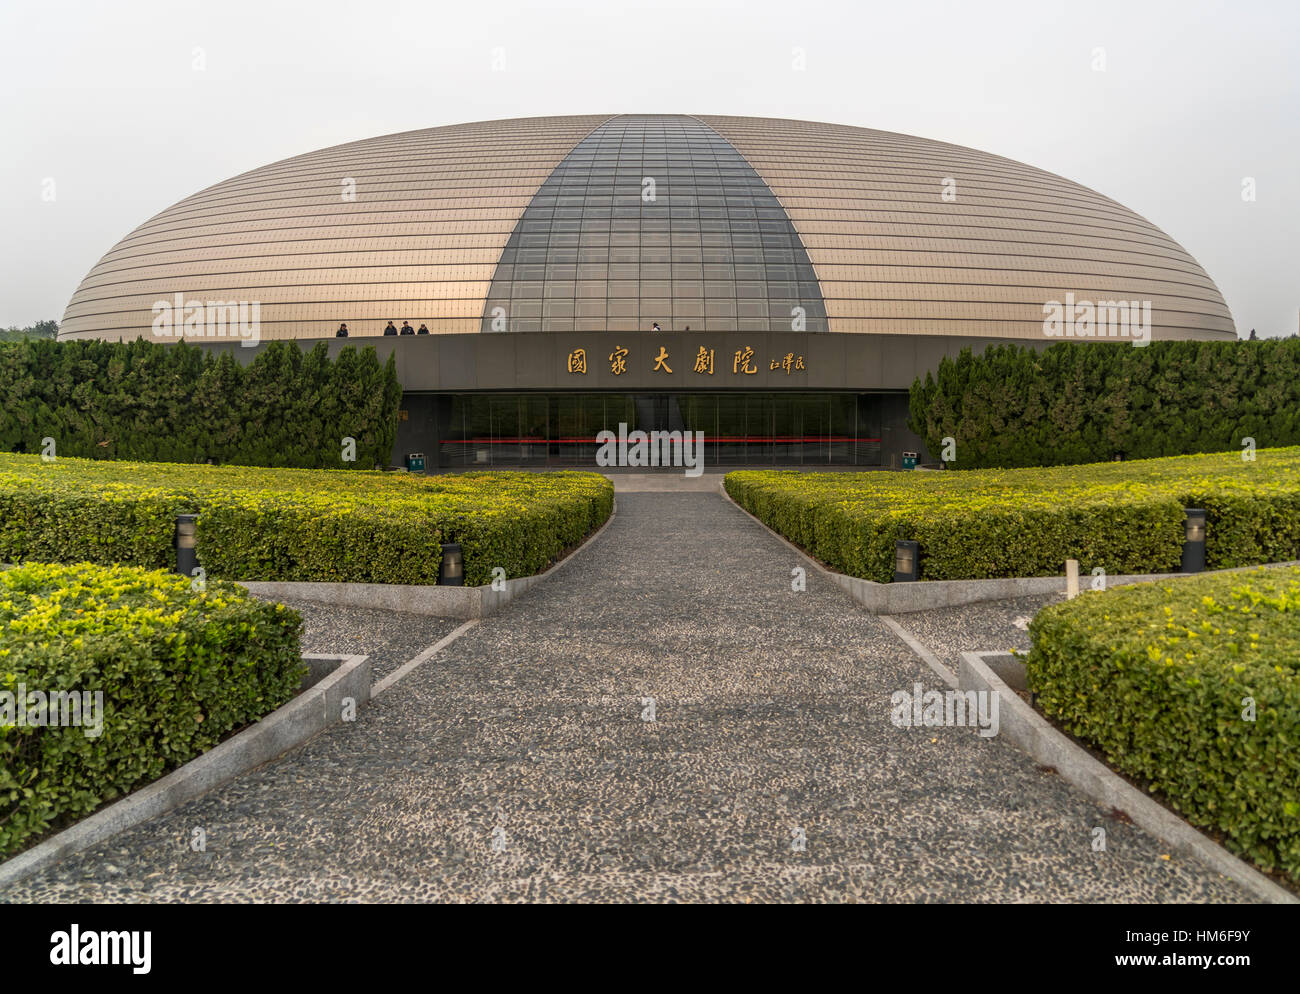 Art Museum, National Centre for the Performing Arts, Beijing, China - Stock Image